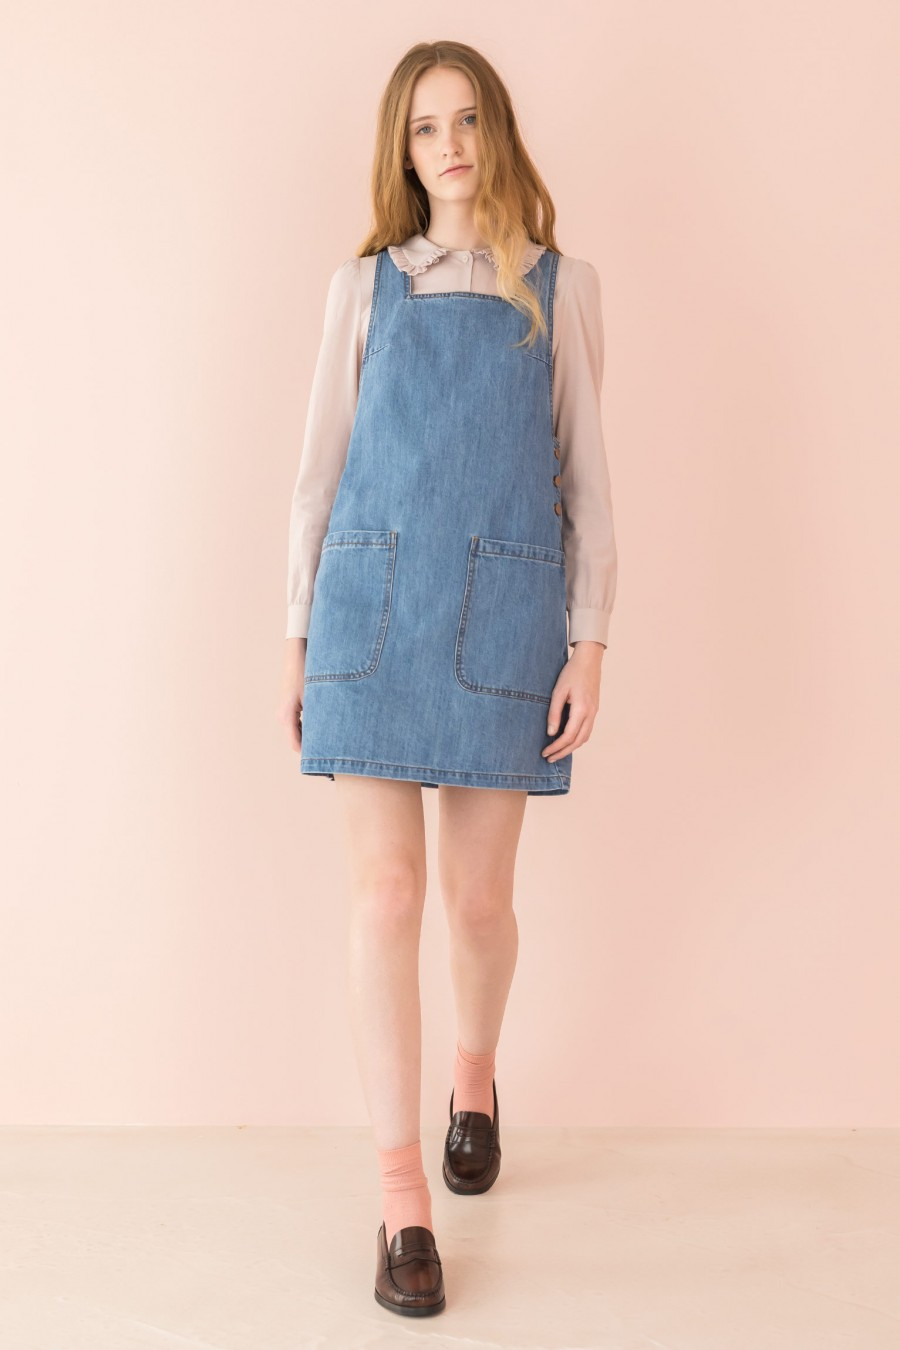 pinafore dress in light jeans with pockets